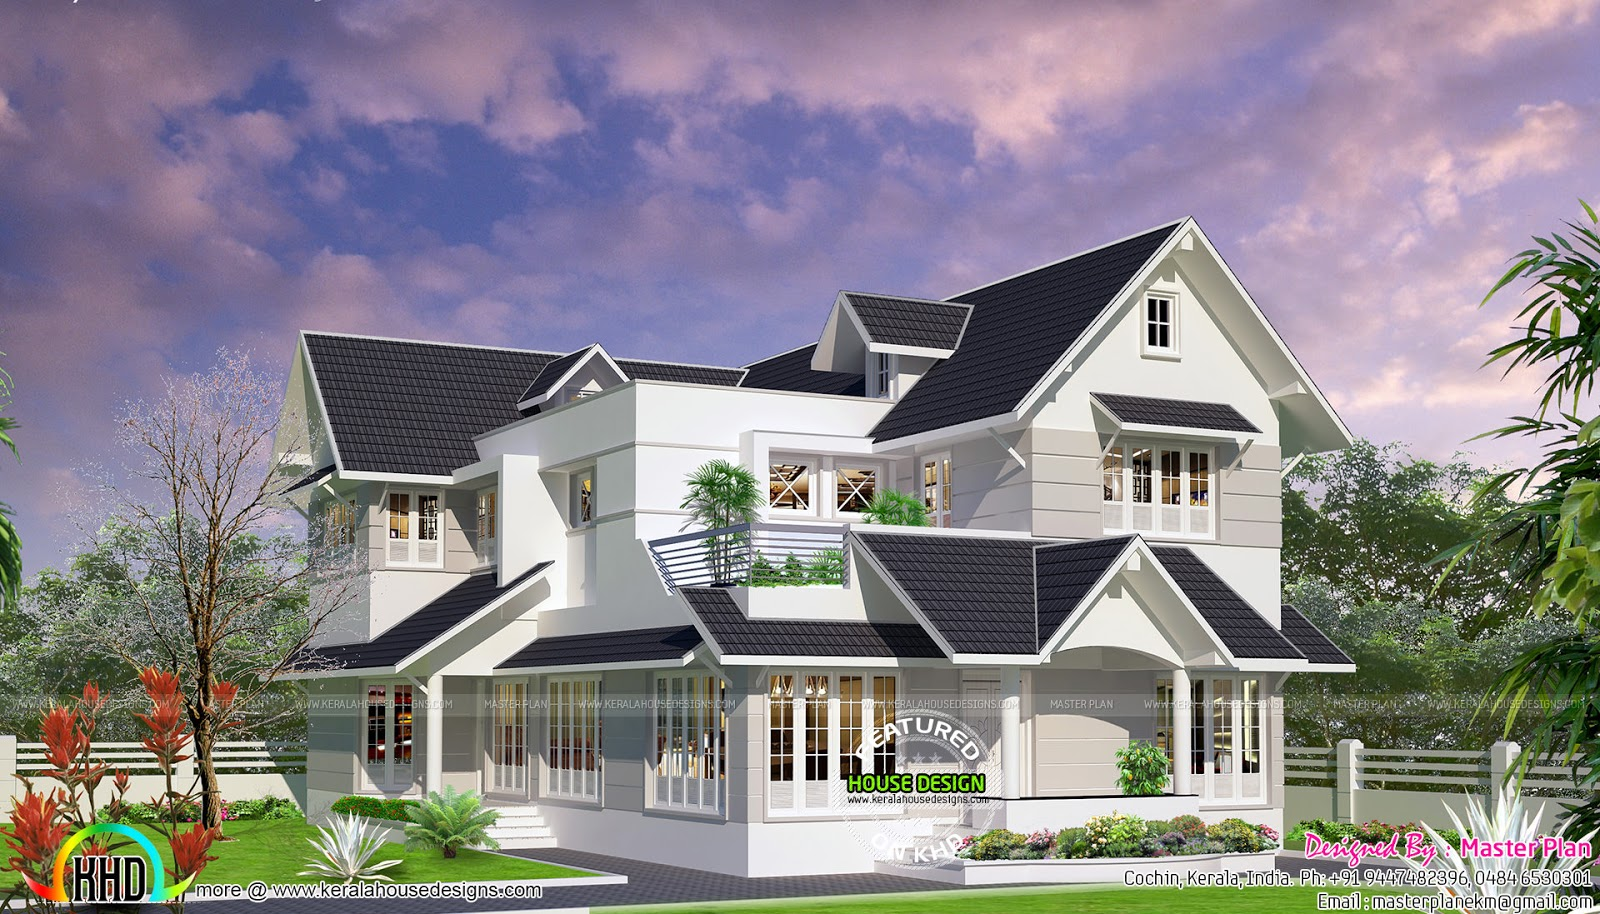 Colonial Touch Home In  Lakhs Kerala Home Design And Floor Plans - Colonial style home design in kerala